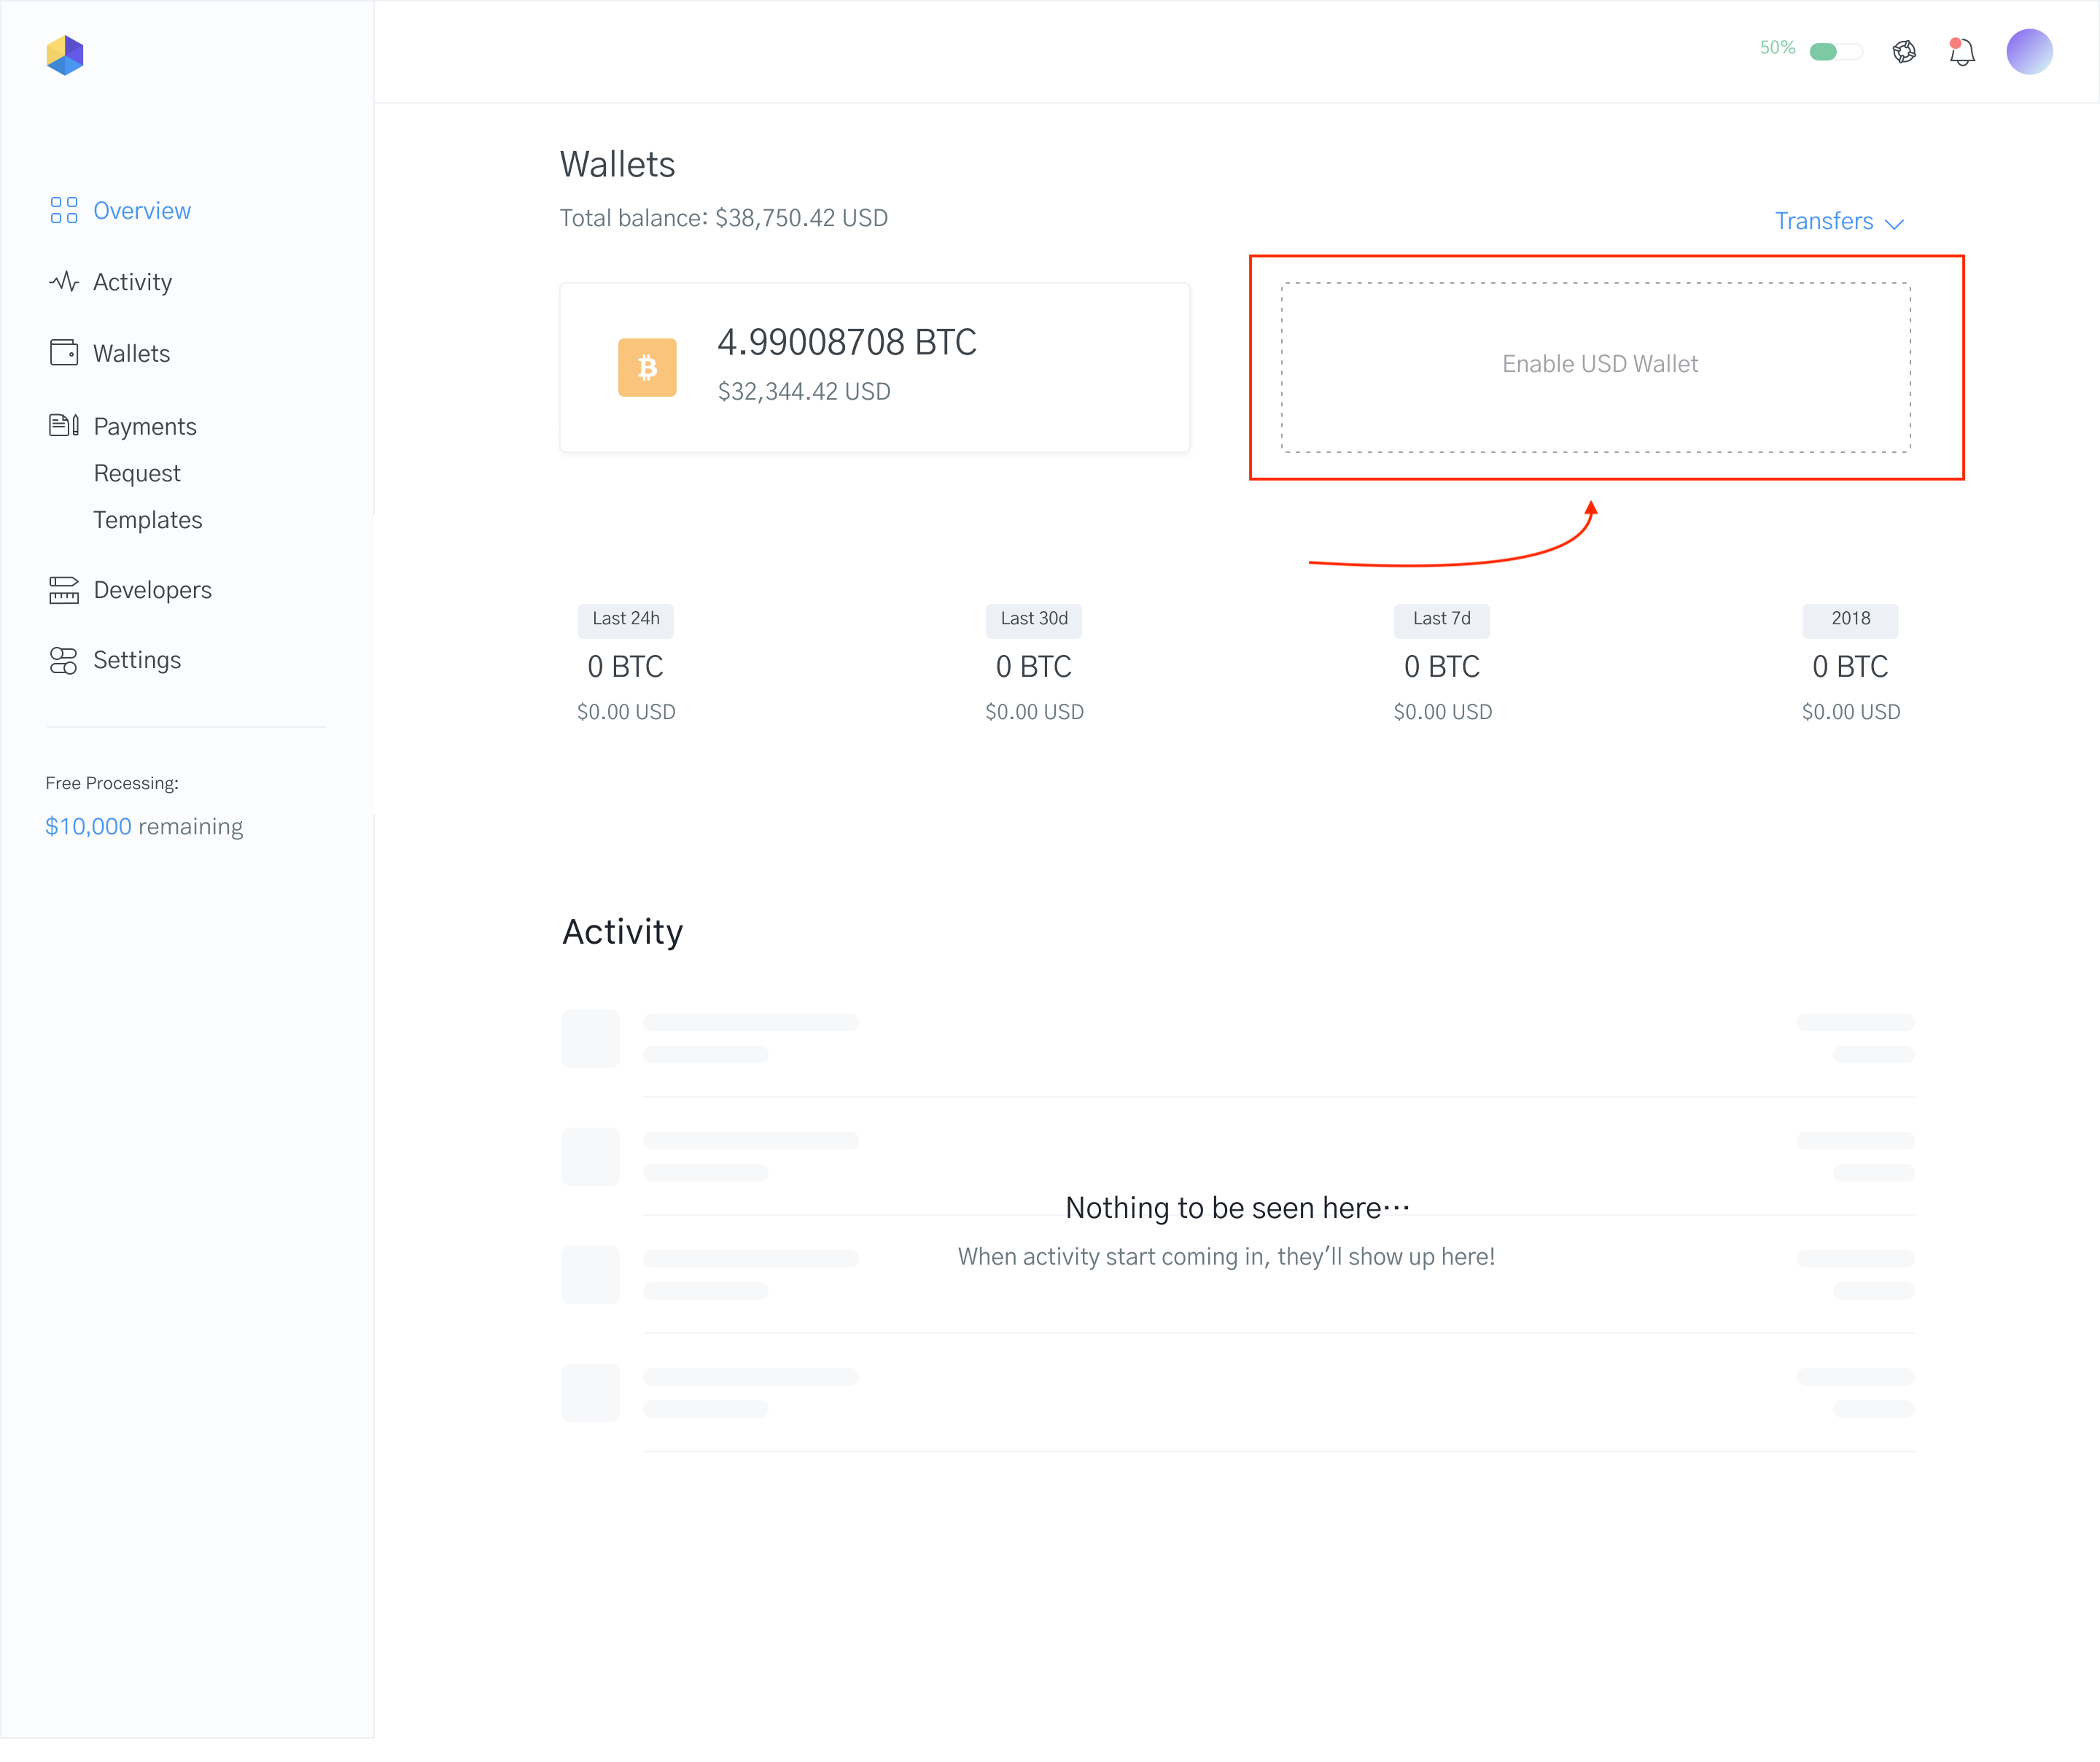 Image of Bank Transfers on the OpenNode dashboard